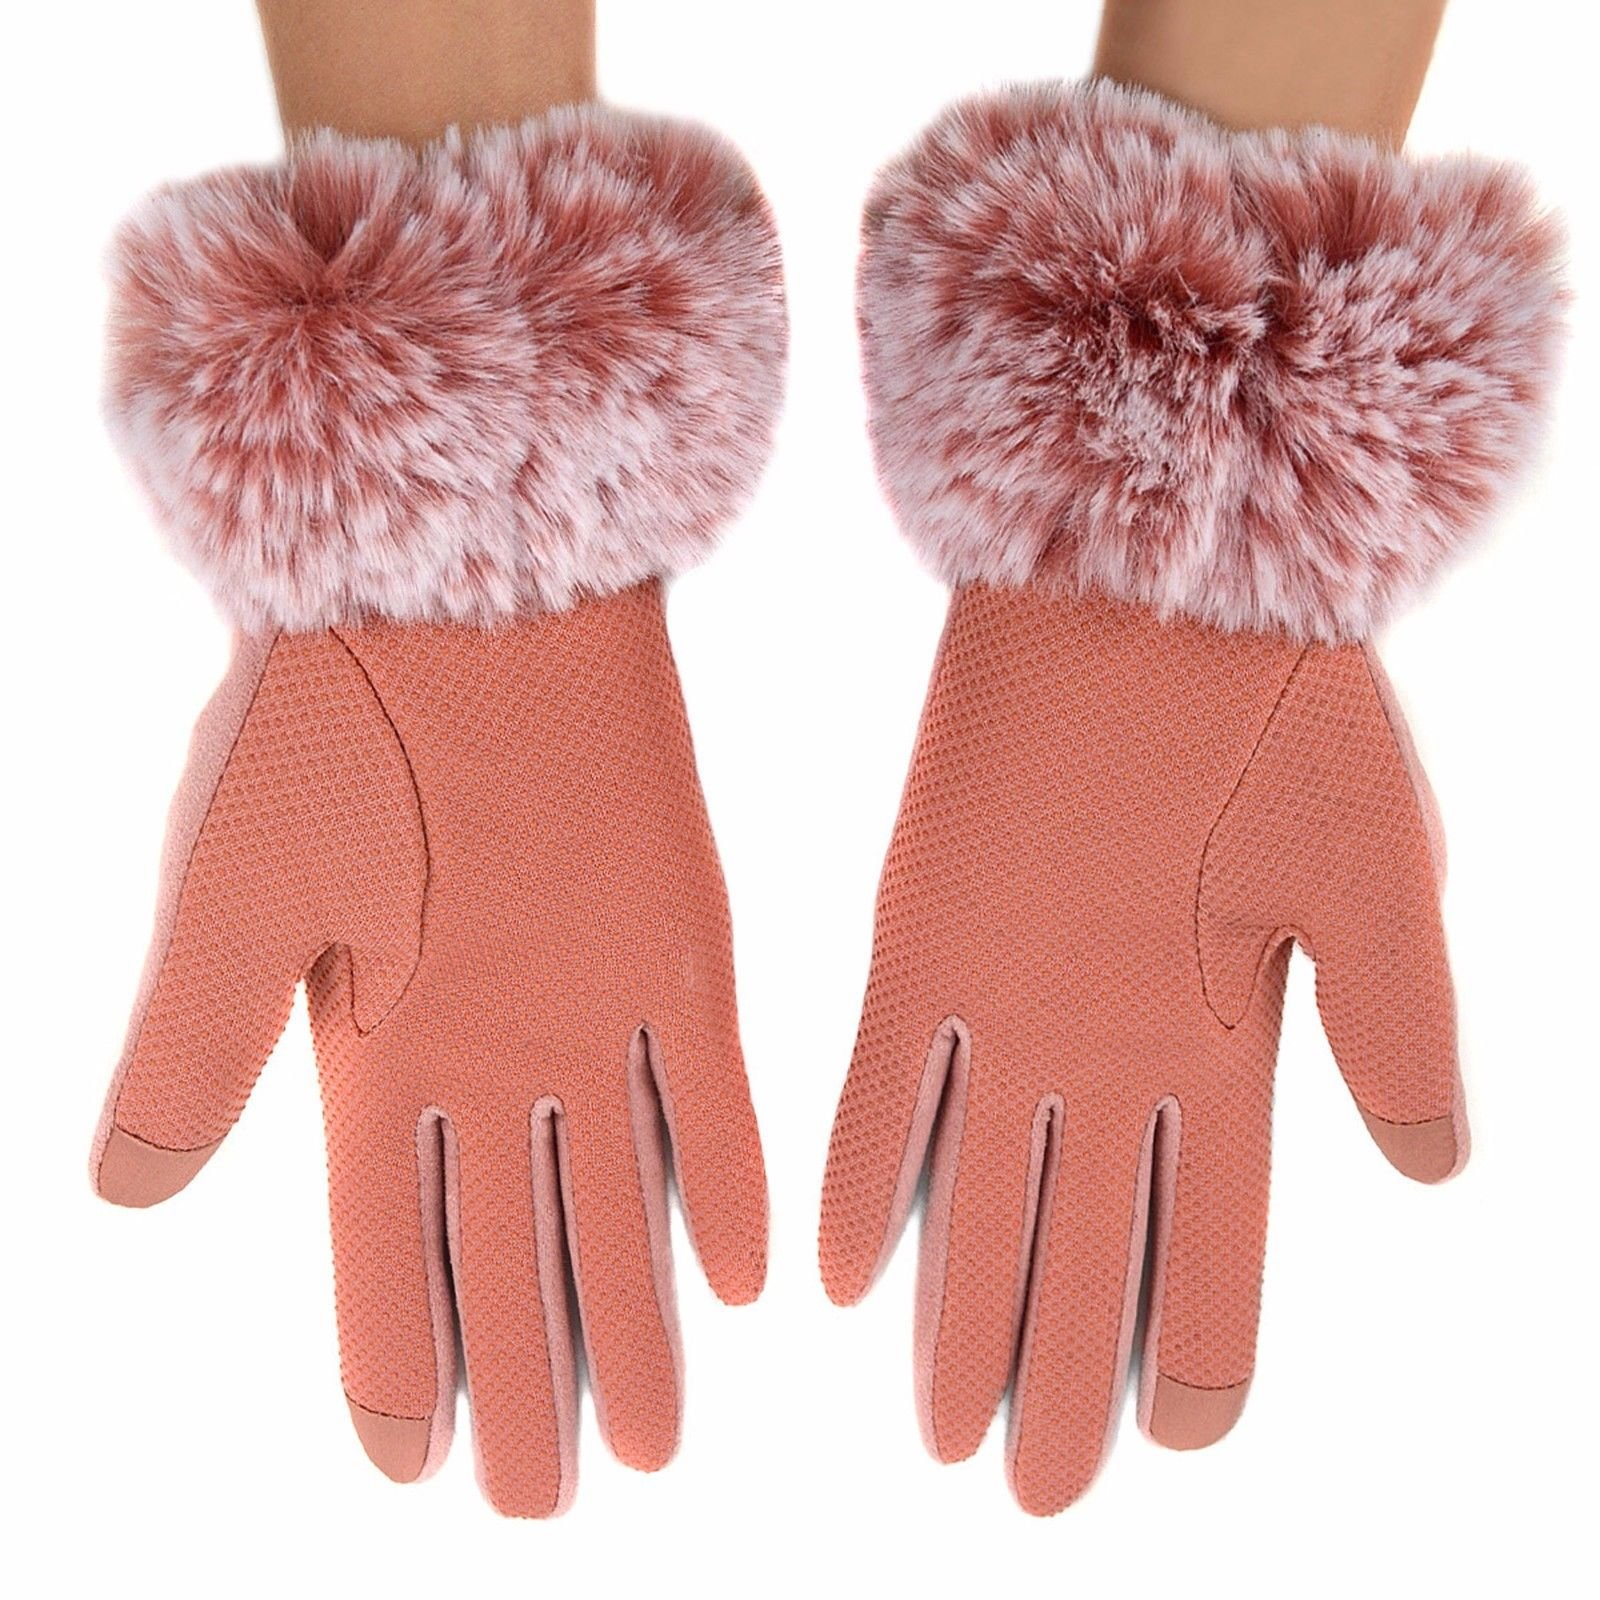 Women-039-s-Non-Slip-Grip-and-Smartphone-Accessible-Winter-Gloves-Touchscreen-Safe thumbnail 10